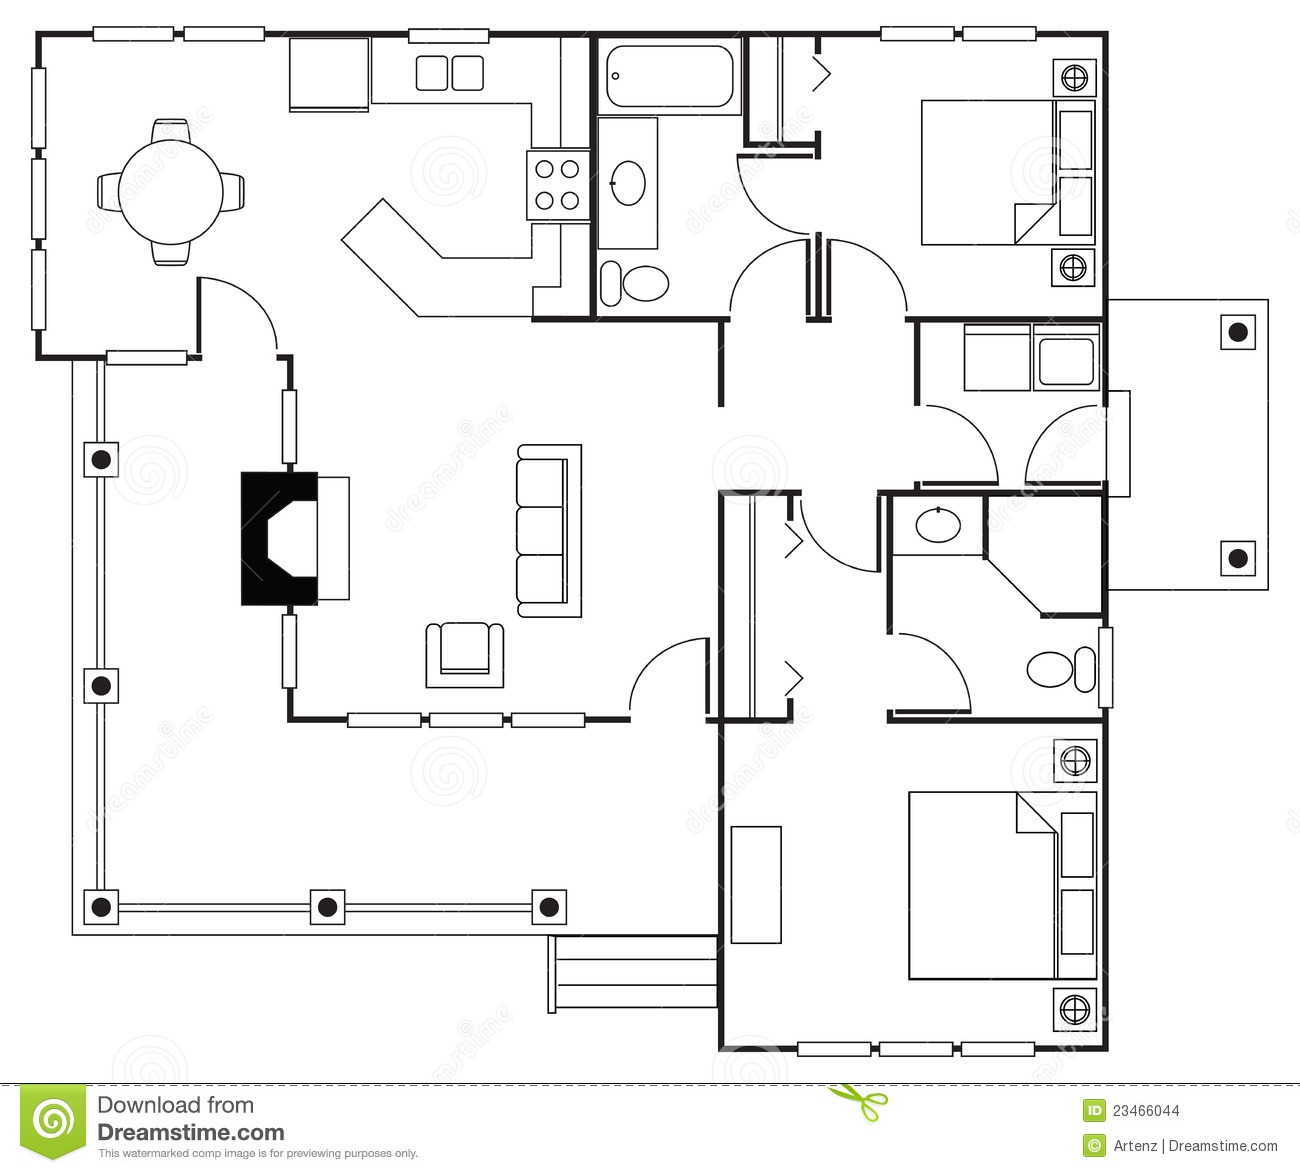 Floorplan stock images image 23466044 for Stock floor plans